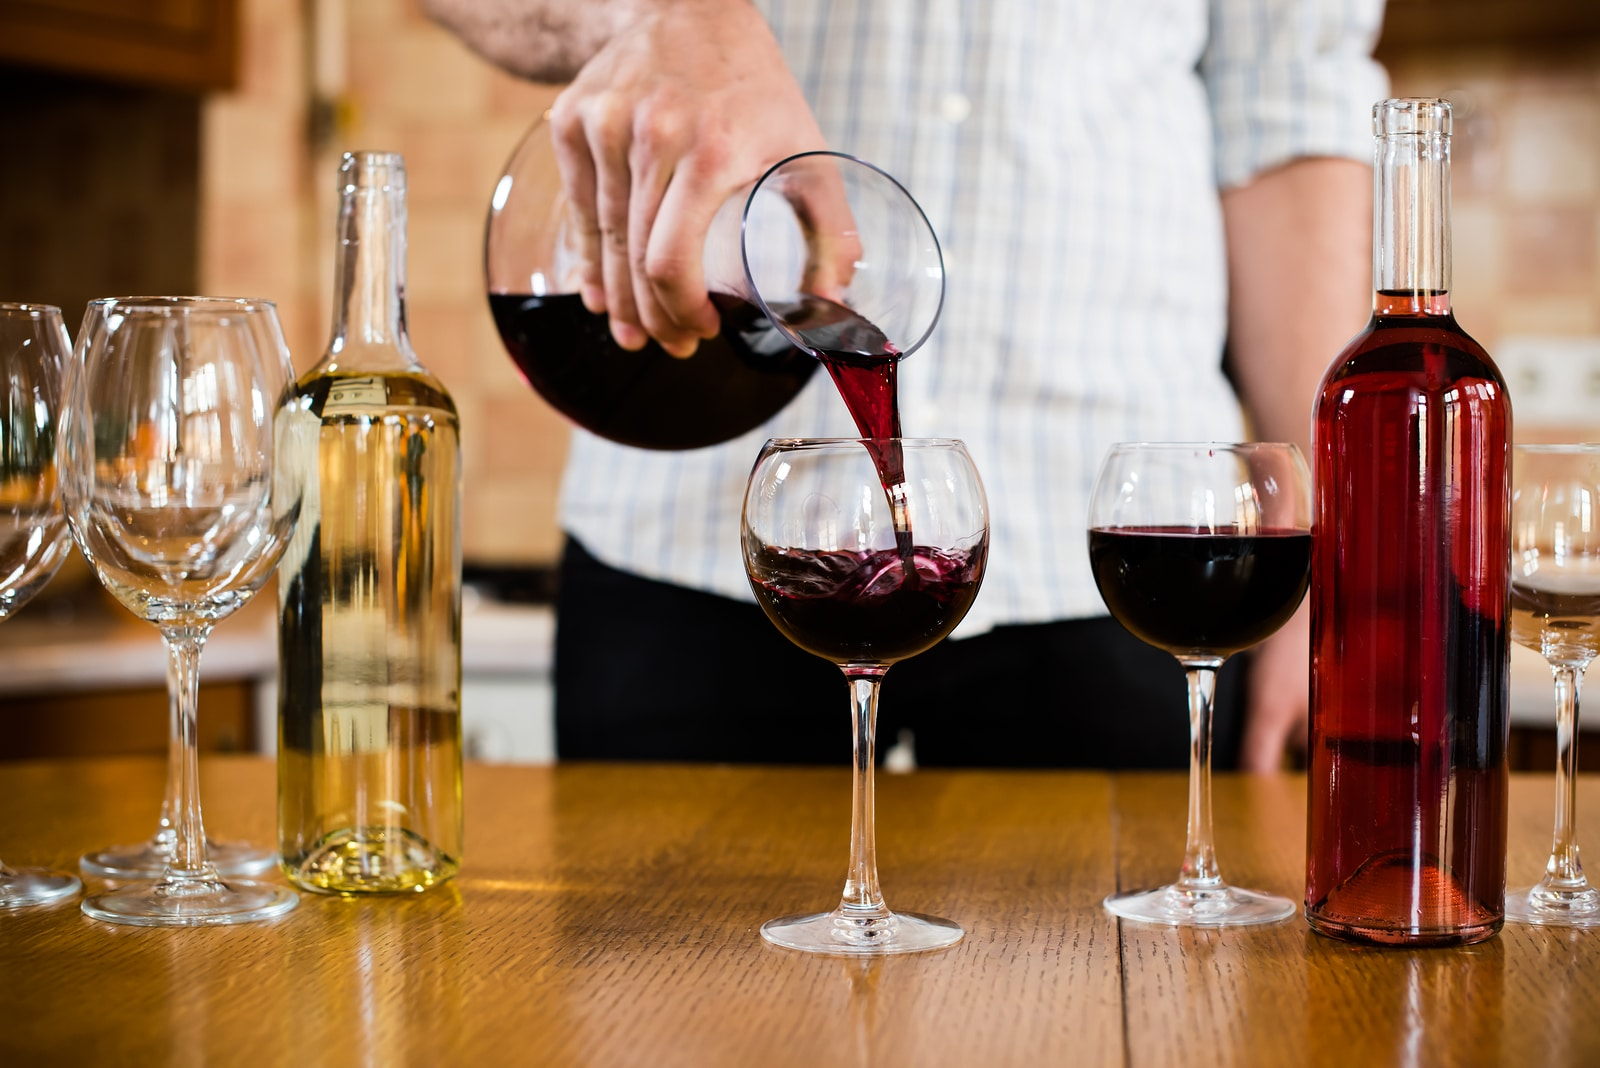 red wine being poured into wine glasses